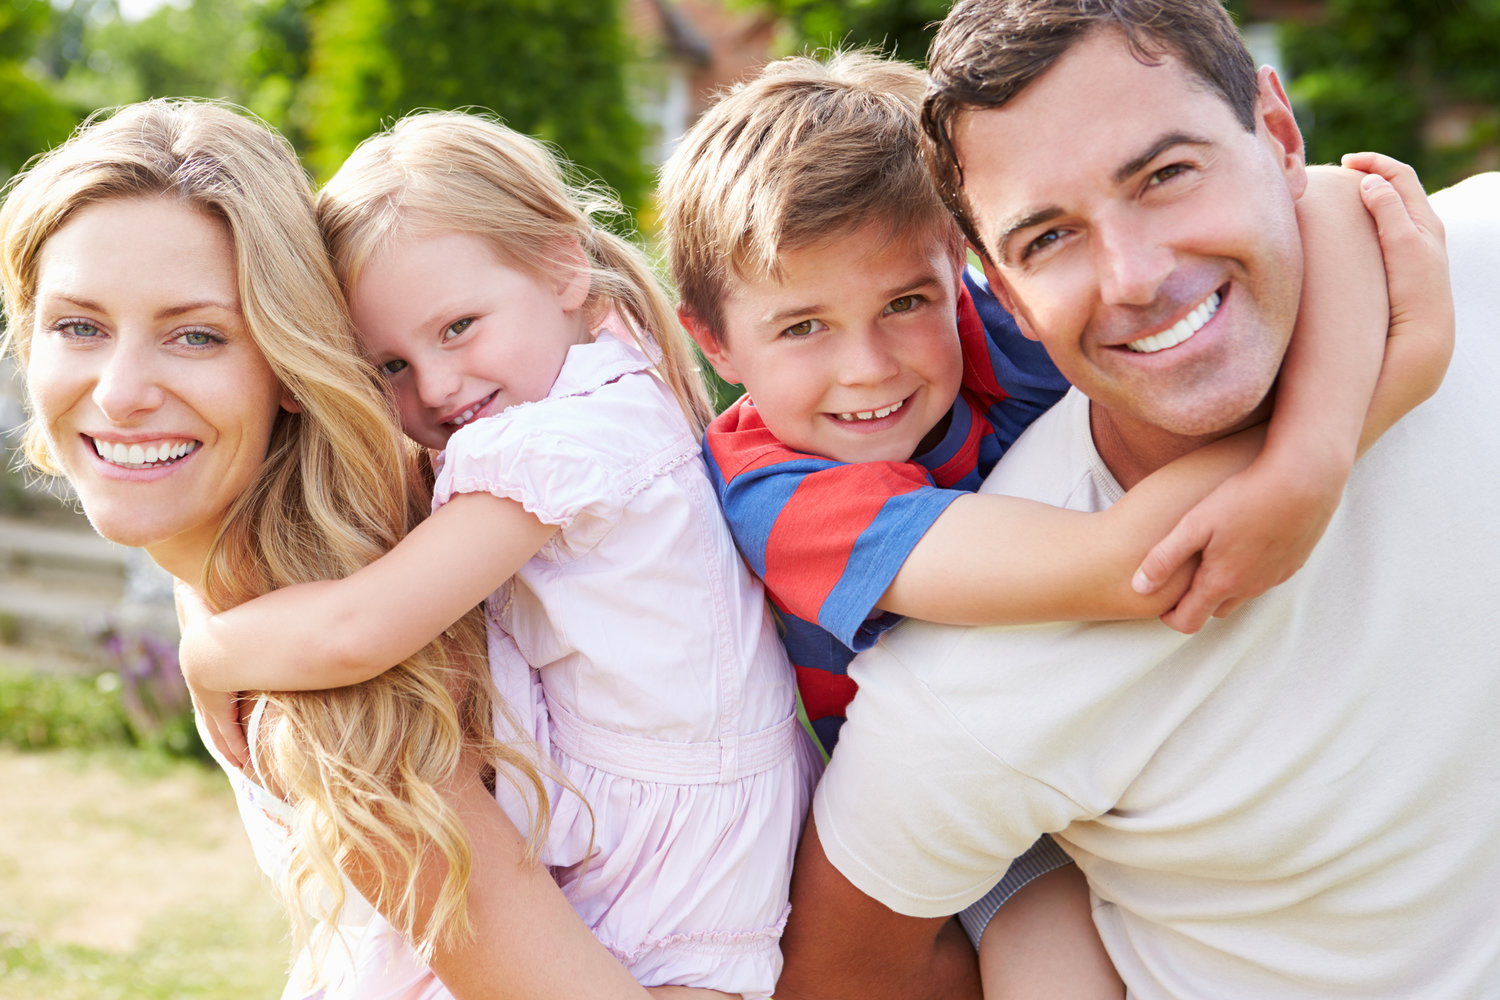 Life insurance protects family